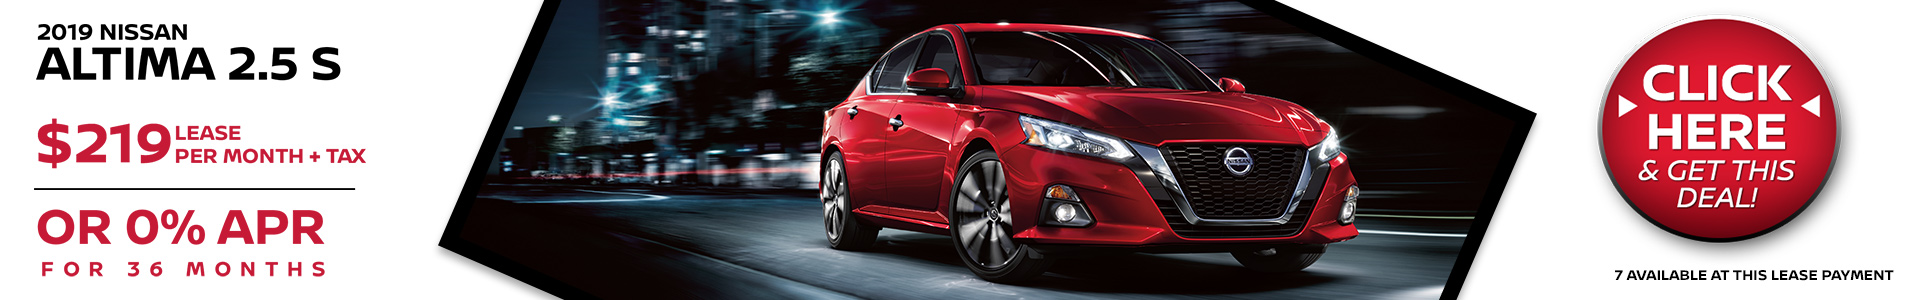 Mossy Nissan - Nissan Altima $219 Lease